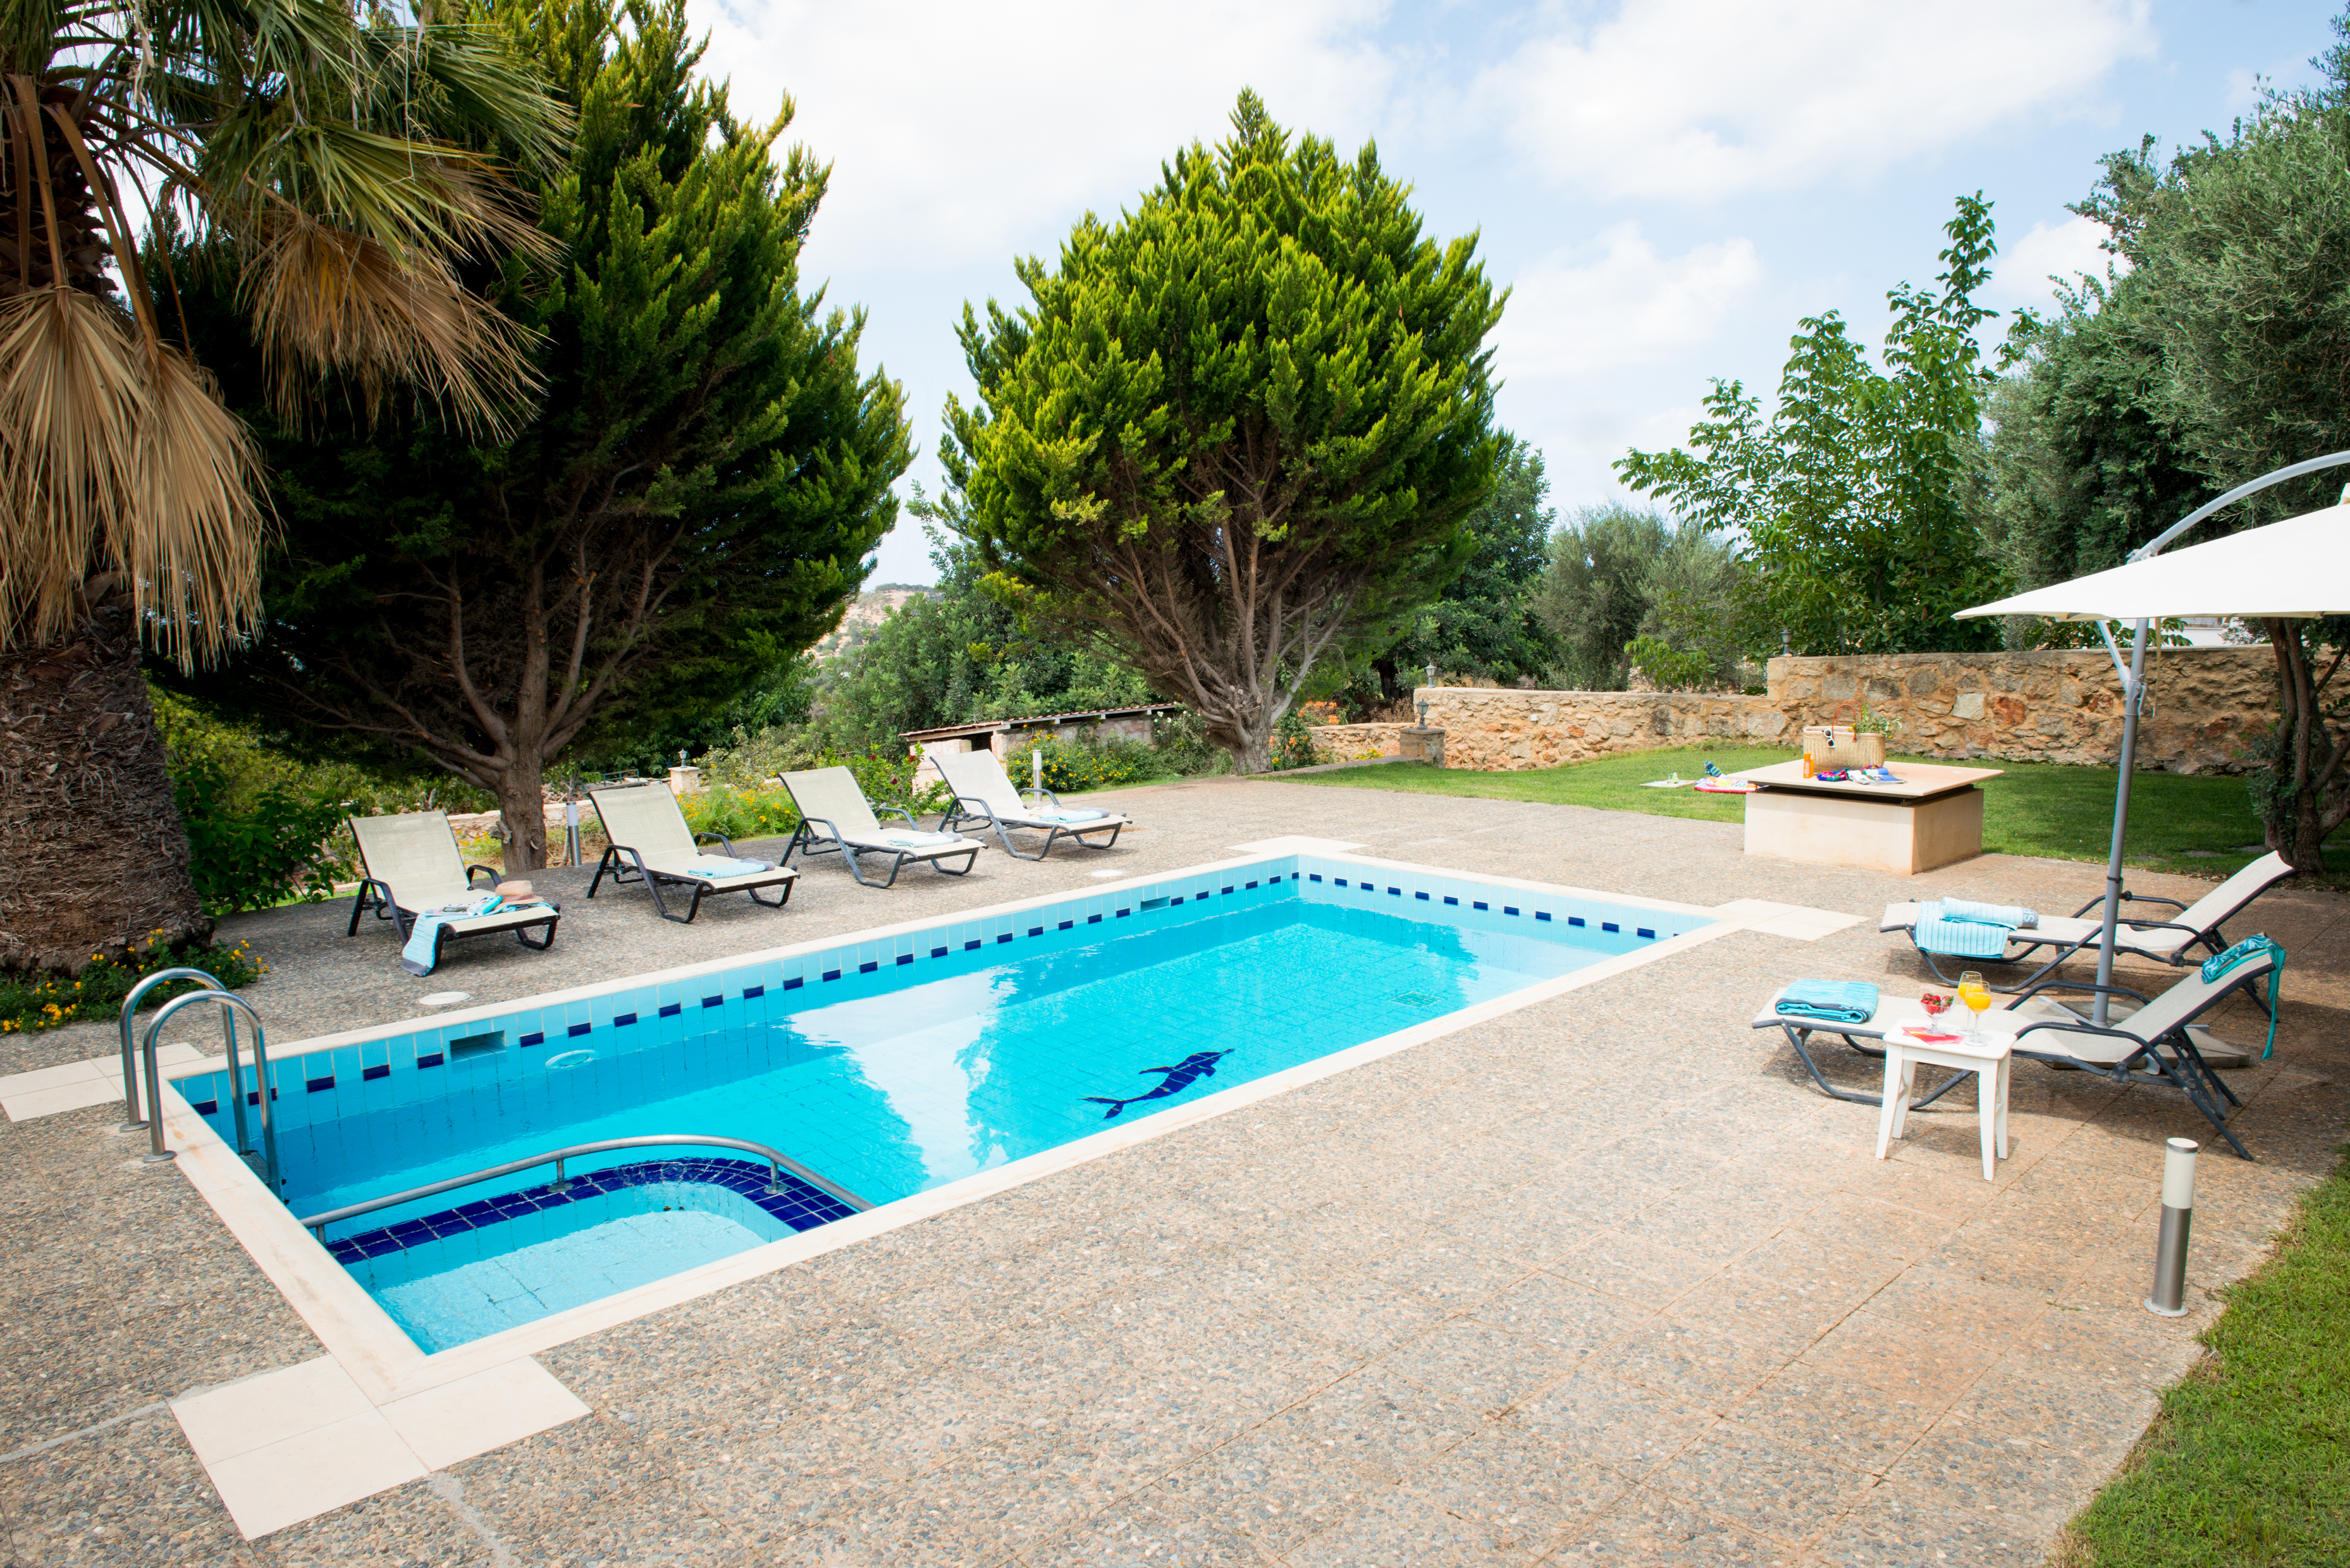 international-estate-photography-villa-adonis-_JCH7675